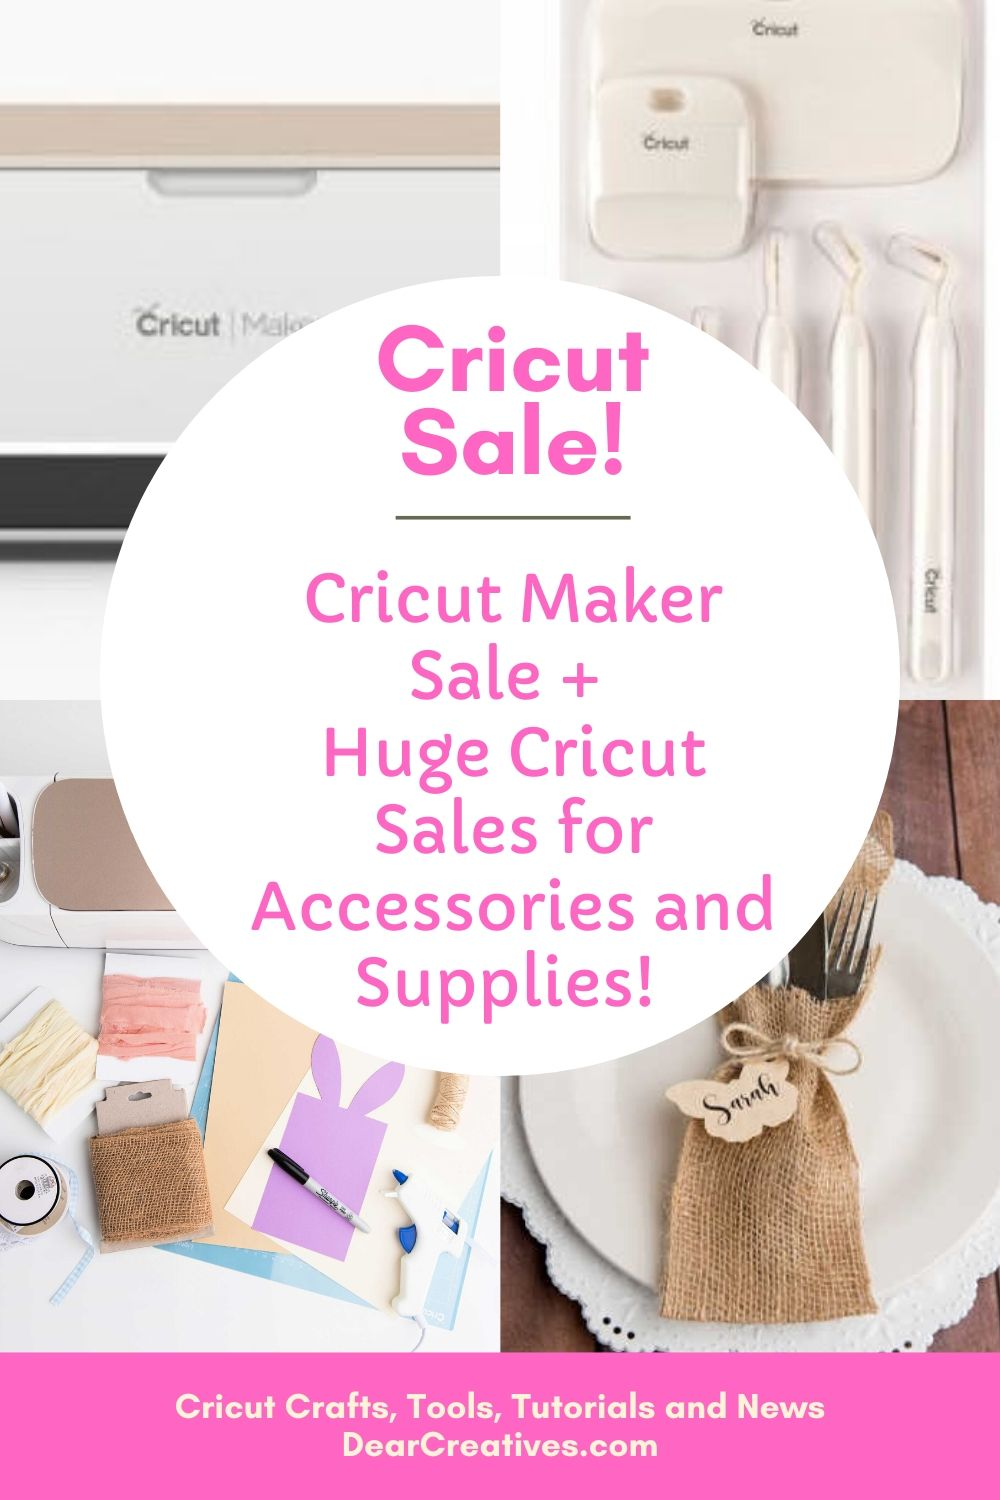 Cricut Maker Sale! + Cricut Sale Materials And Accessories